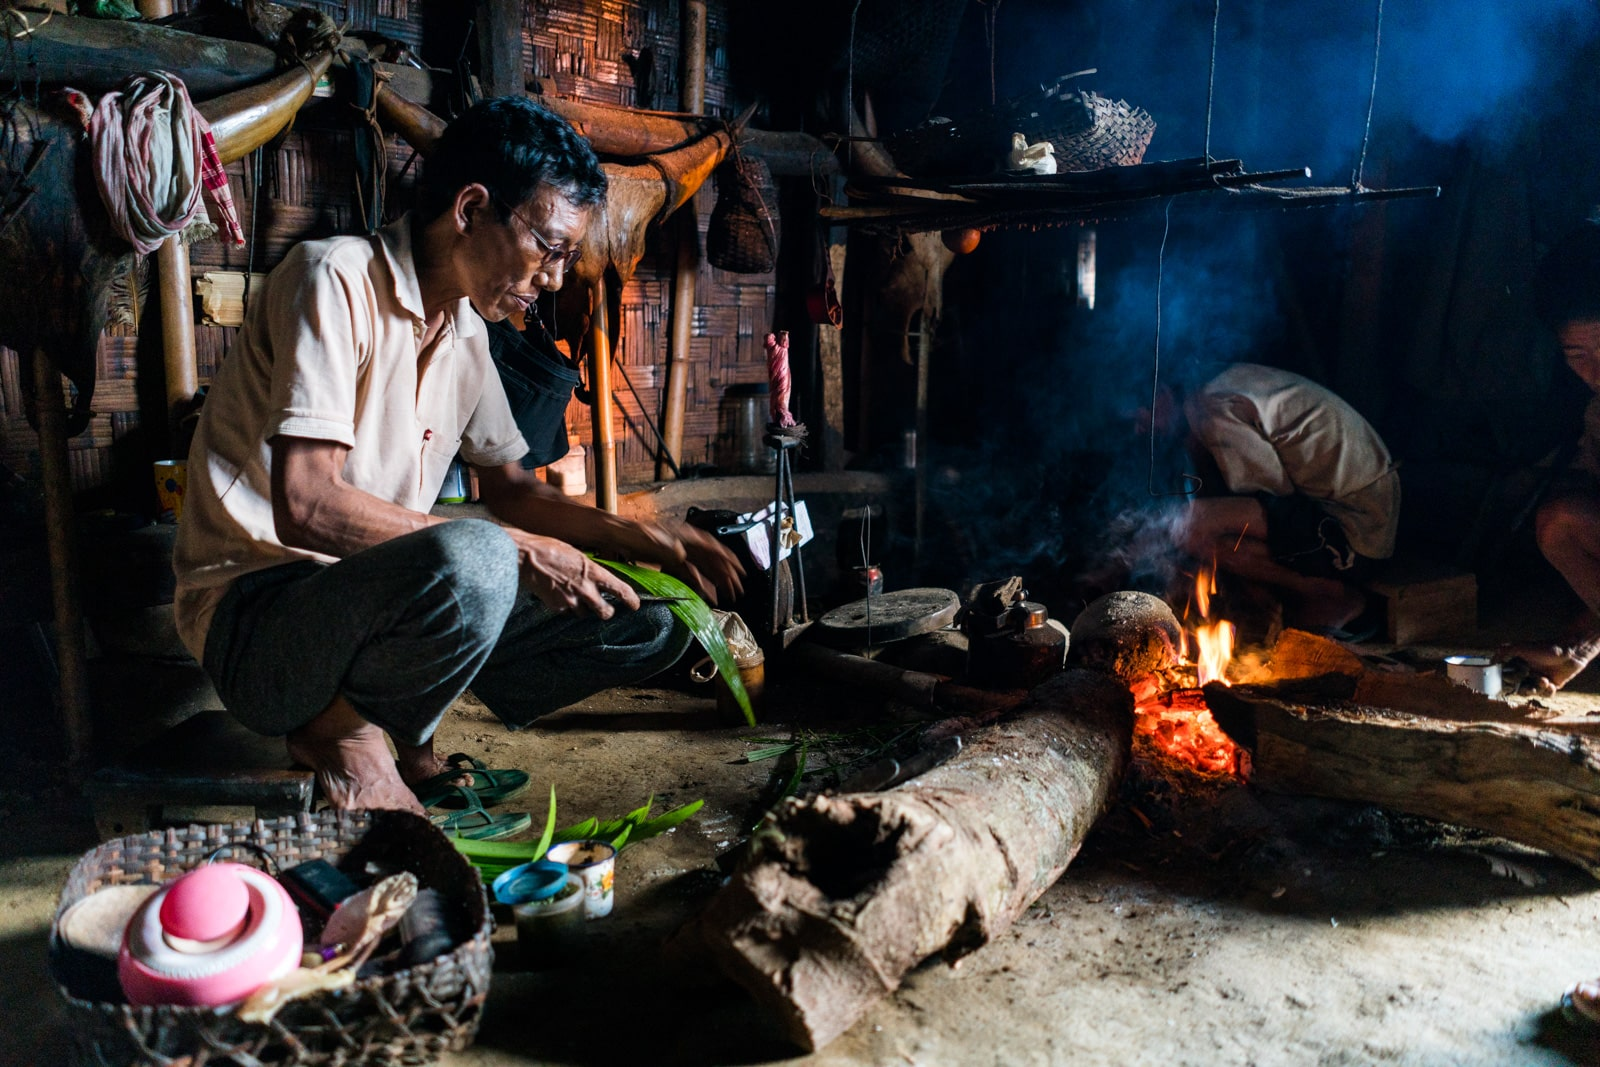 Opium and Jesus and headhunting in Longwa Village, Nagaland, India - Nyakto by the fire - Lost With Purpose